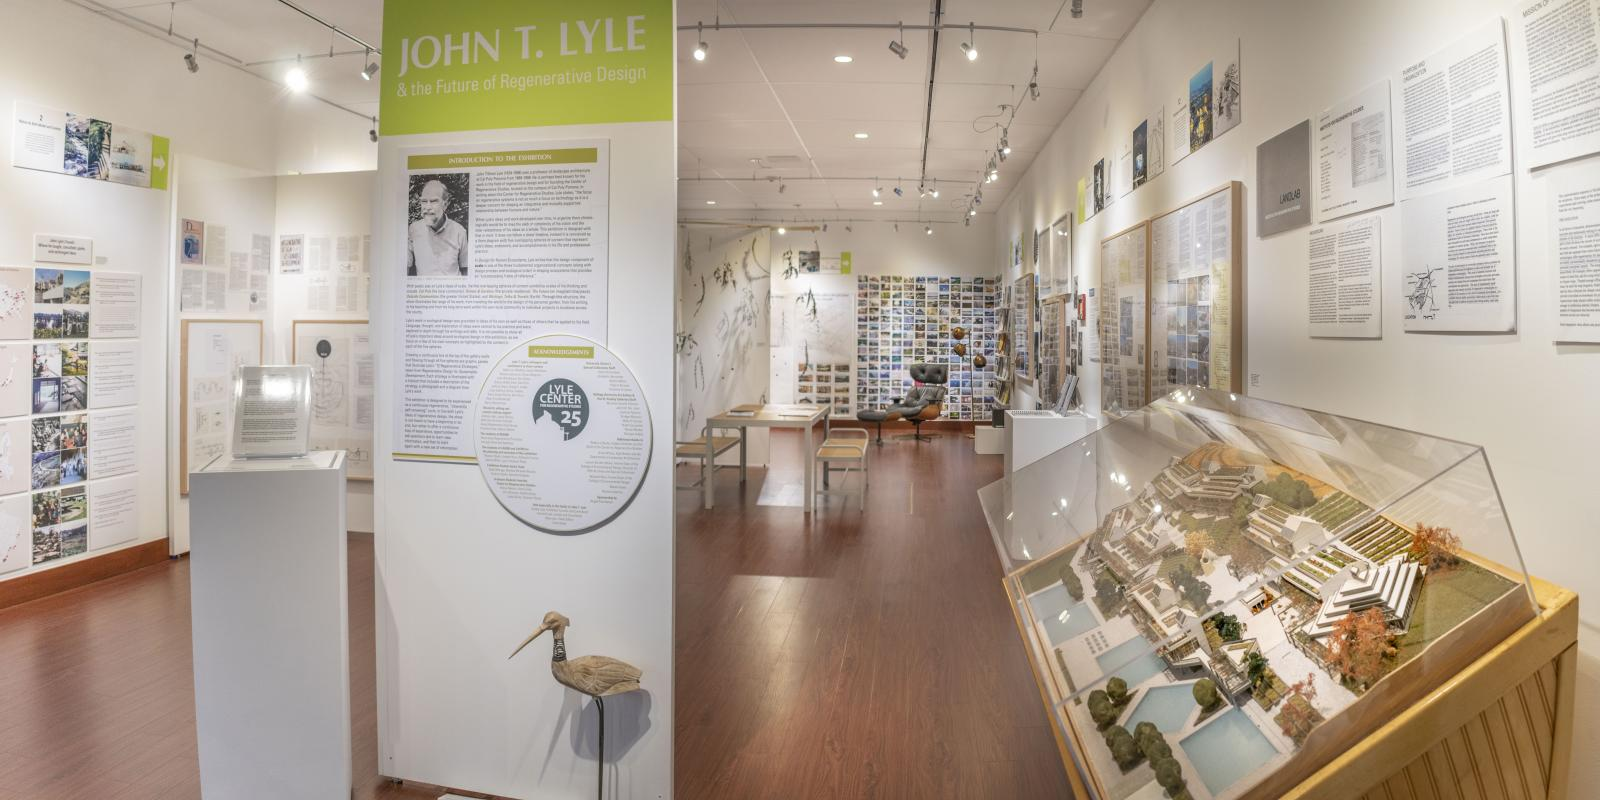 """Installation View, Gallery entrance, """"John T. Lyle and the Future of Regenerative Design"""" Exhibition, Oct.17, 2019 to Dec.8, 2019, Curator: Cybele Lyle, Don B. Huntley Gallery, Cal Poly Pomona."""